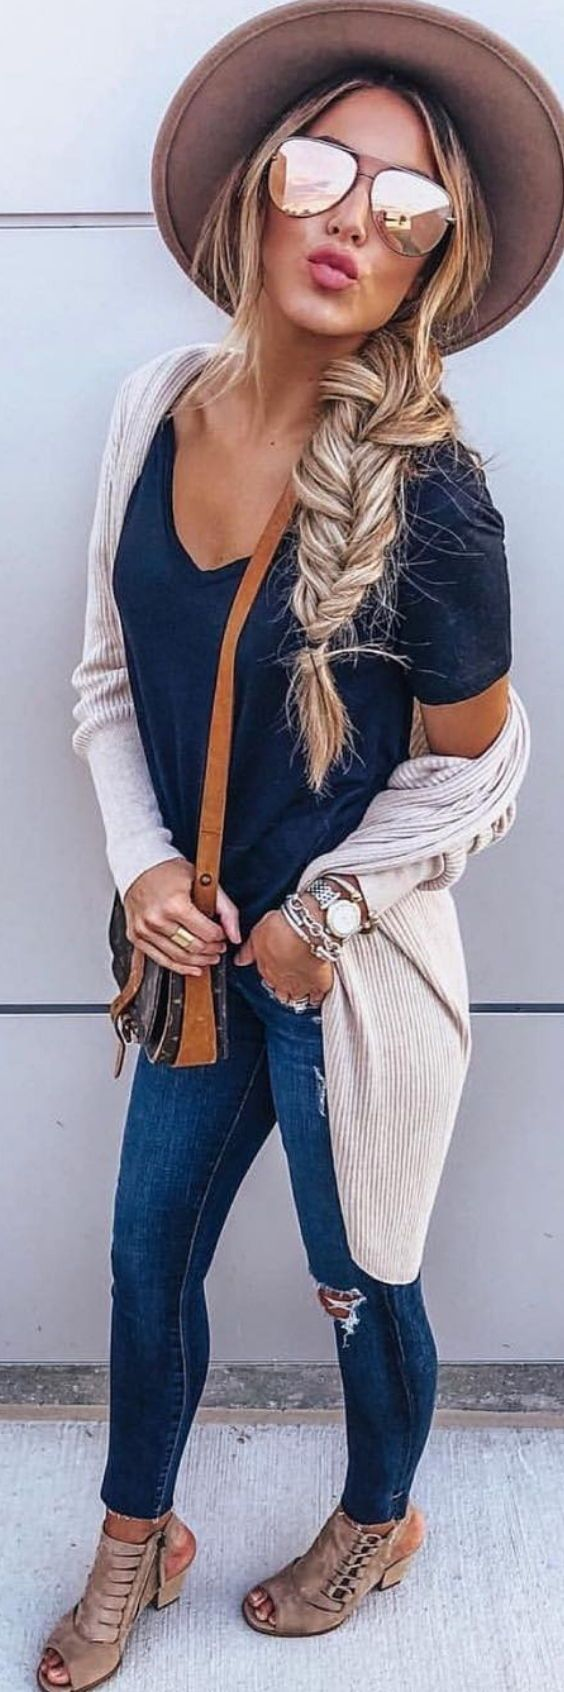 744d82f2de36 15 Cute and Casual Outfit Ideas — Casual Spring Outfits 2019  springoutfits   outfitideas